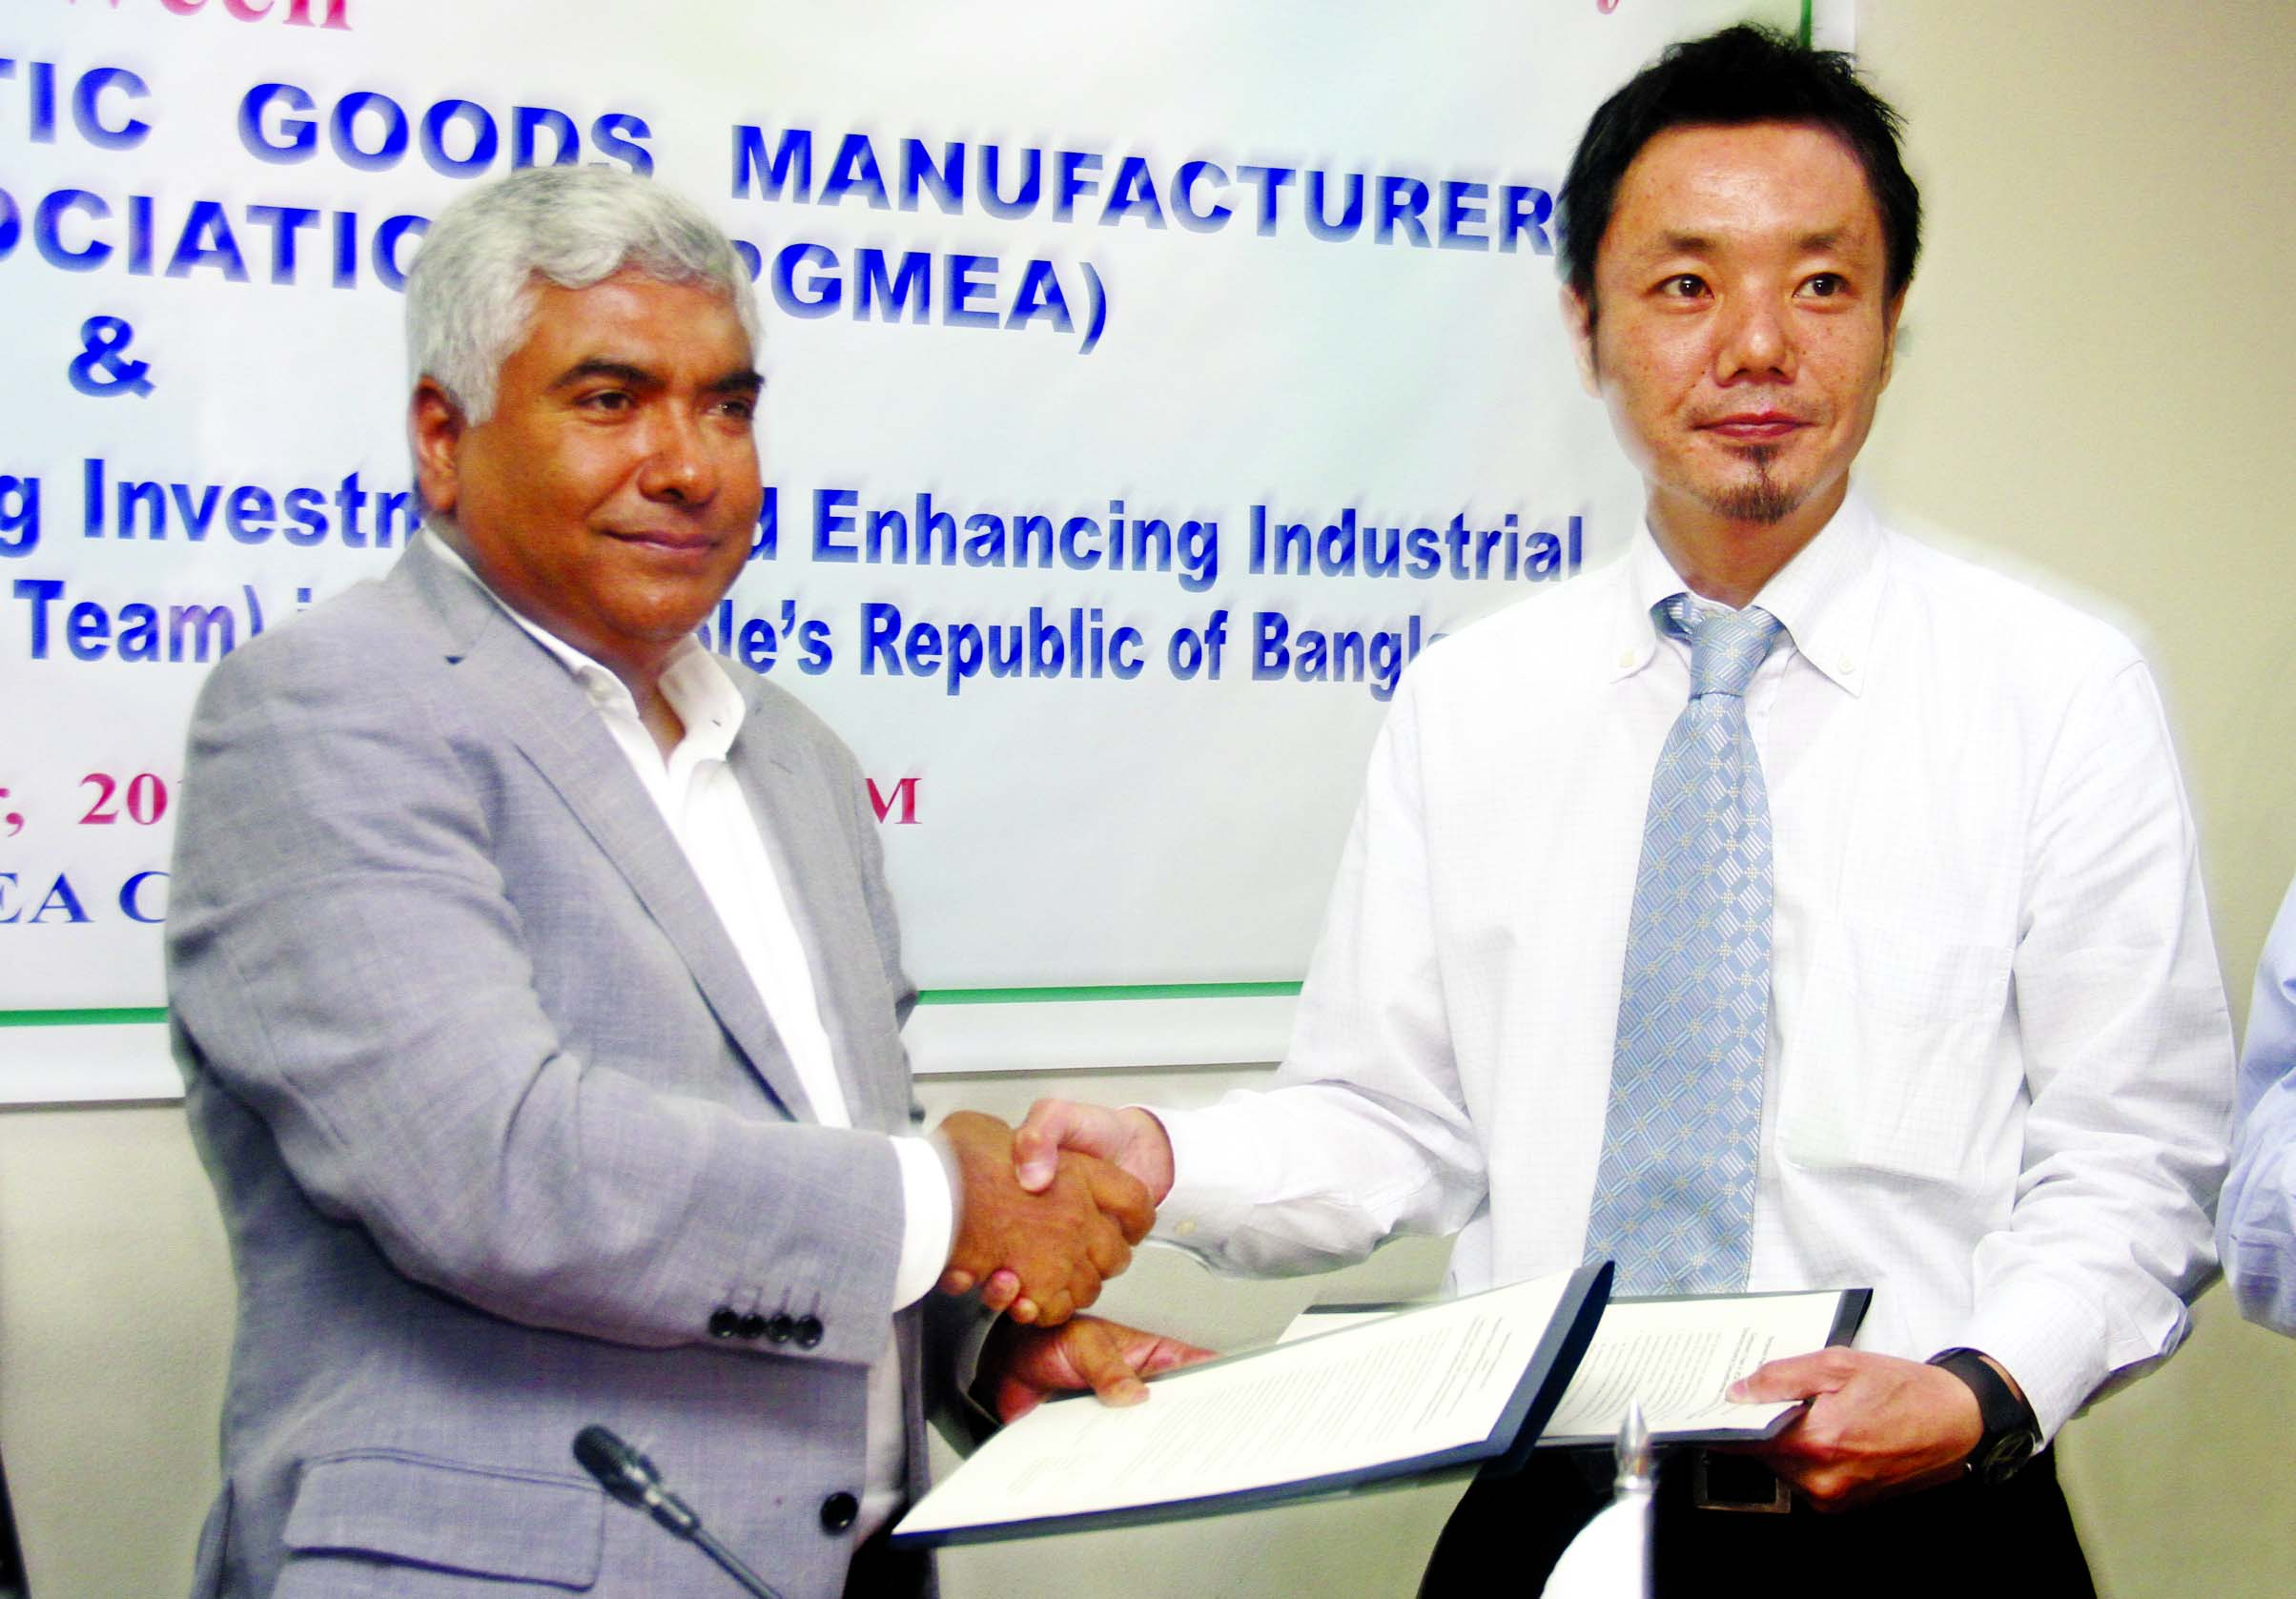 Md. Jashim Uddin, President of BPGMEA and Vice Chairman, Bengal Group of Industries and Keisuke Sugiyama, Component Leader, JICA Project, sign an agreement for promoting investment and enhancing industrial competitiveness (Component 3 Team) at the association office on Wednesday.